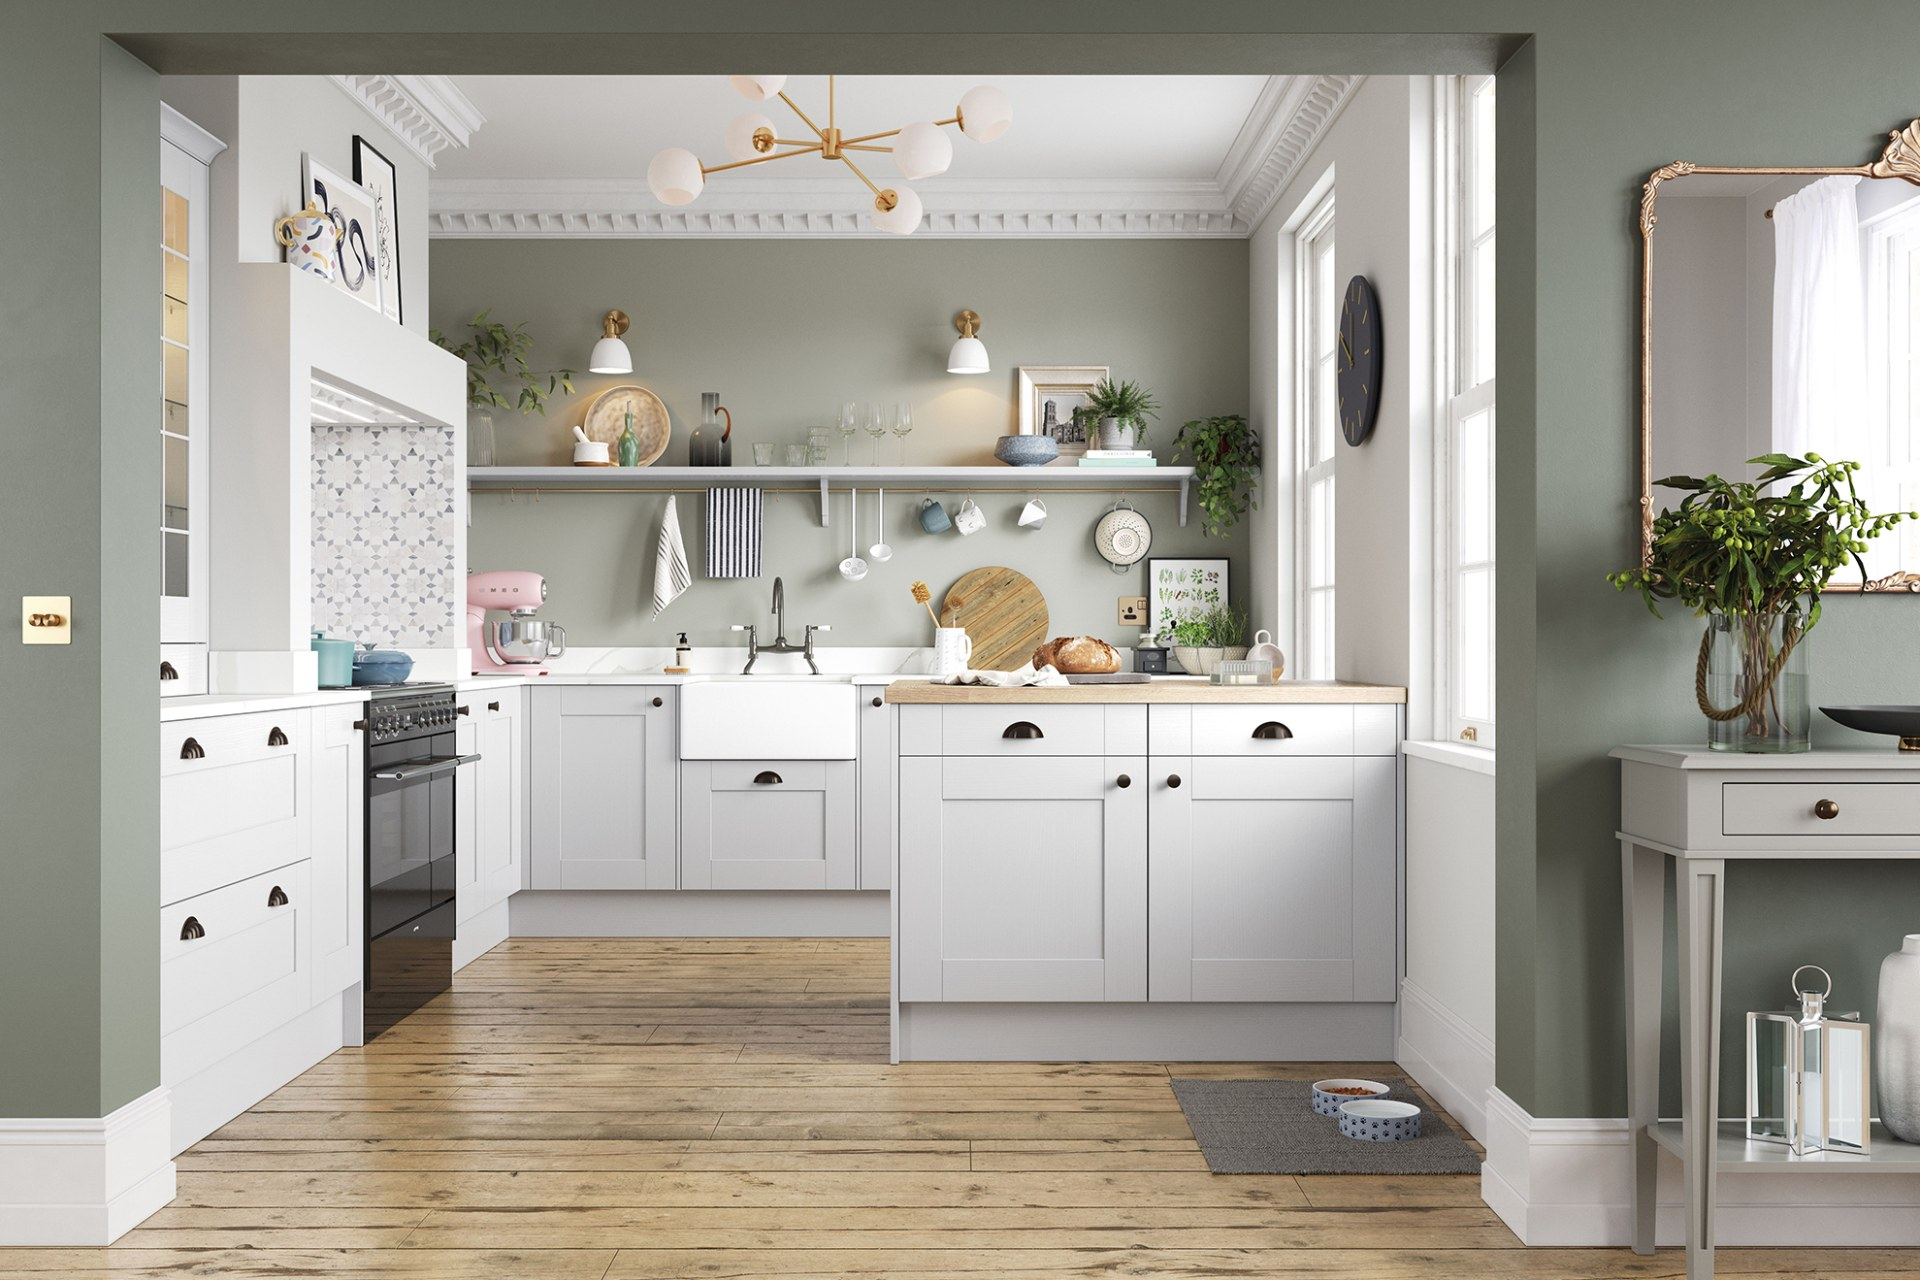 Winchester kitchen by Magnet. A wood grain effect affordable alternative to solid timber built from hardwearing MDF and available in 5 colours.